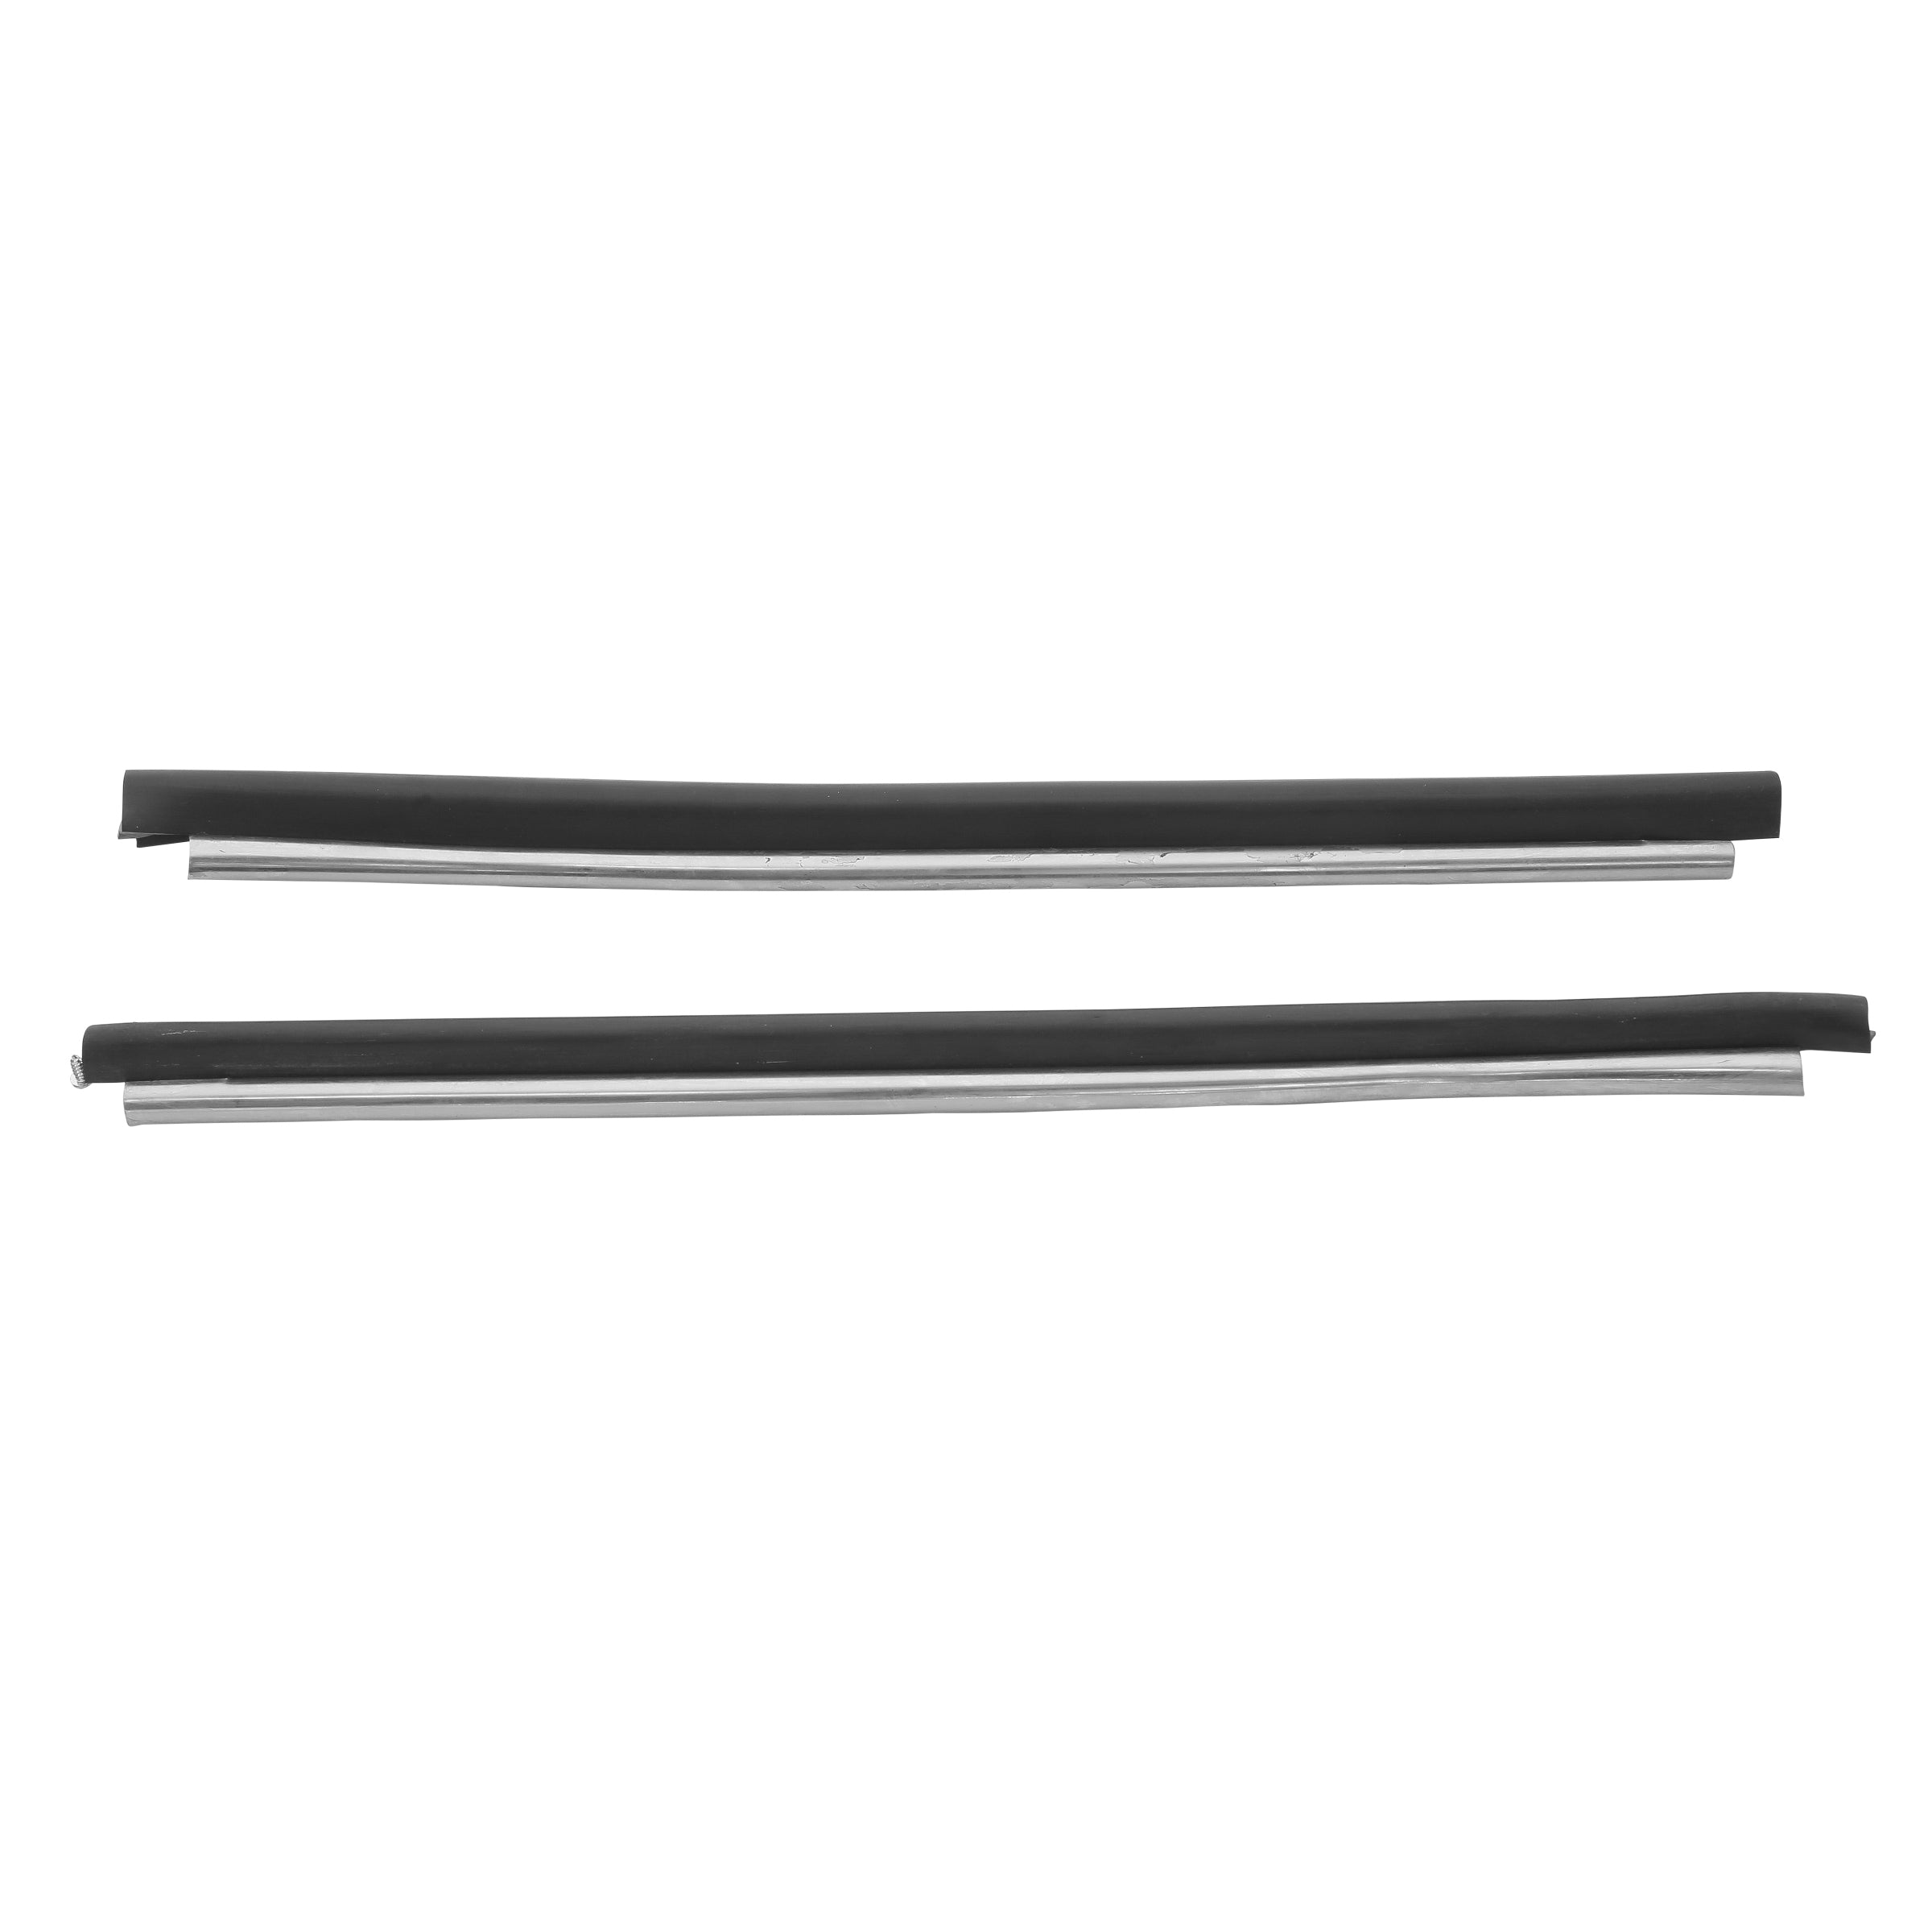 Door Scuff (Sill) Plates • 1938-39 Ford Fordor (Rear)